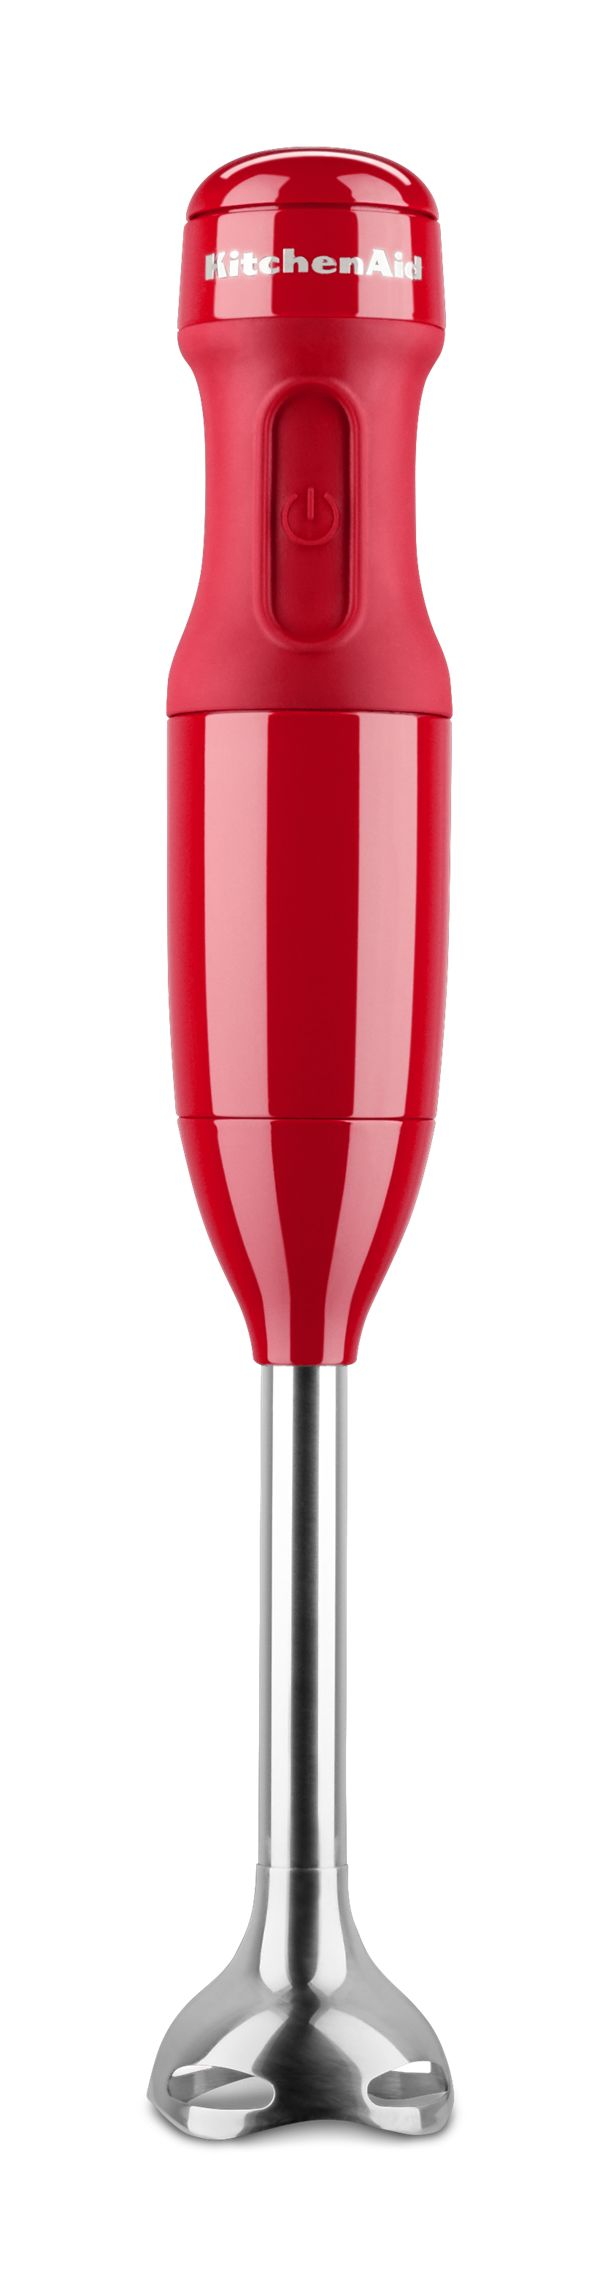 2 Speed Hand Blender